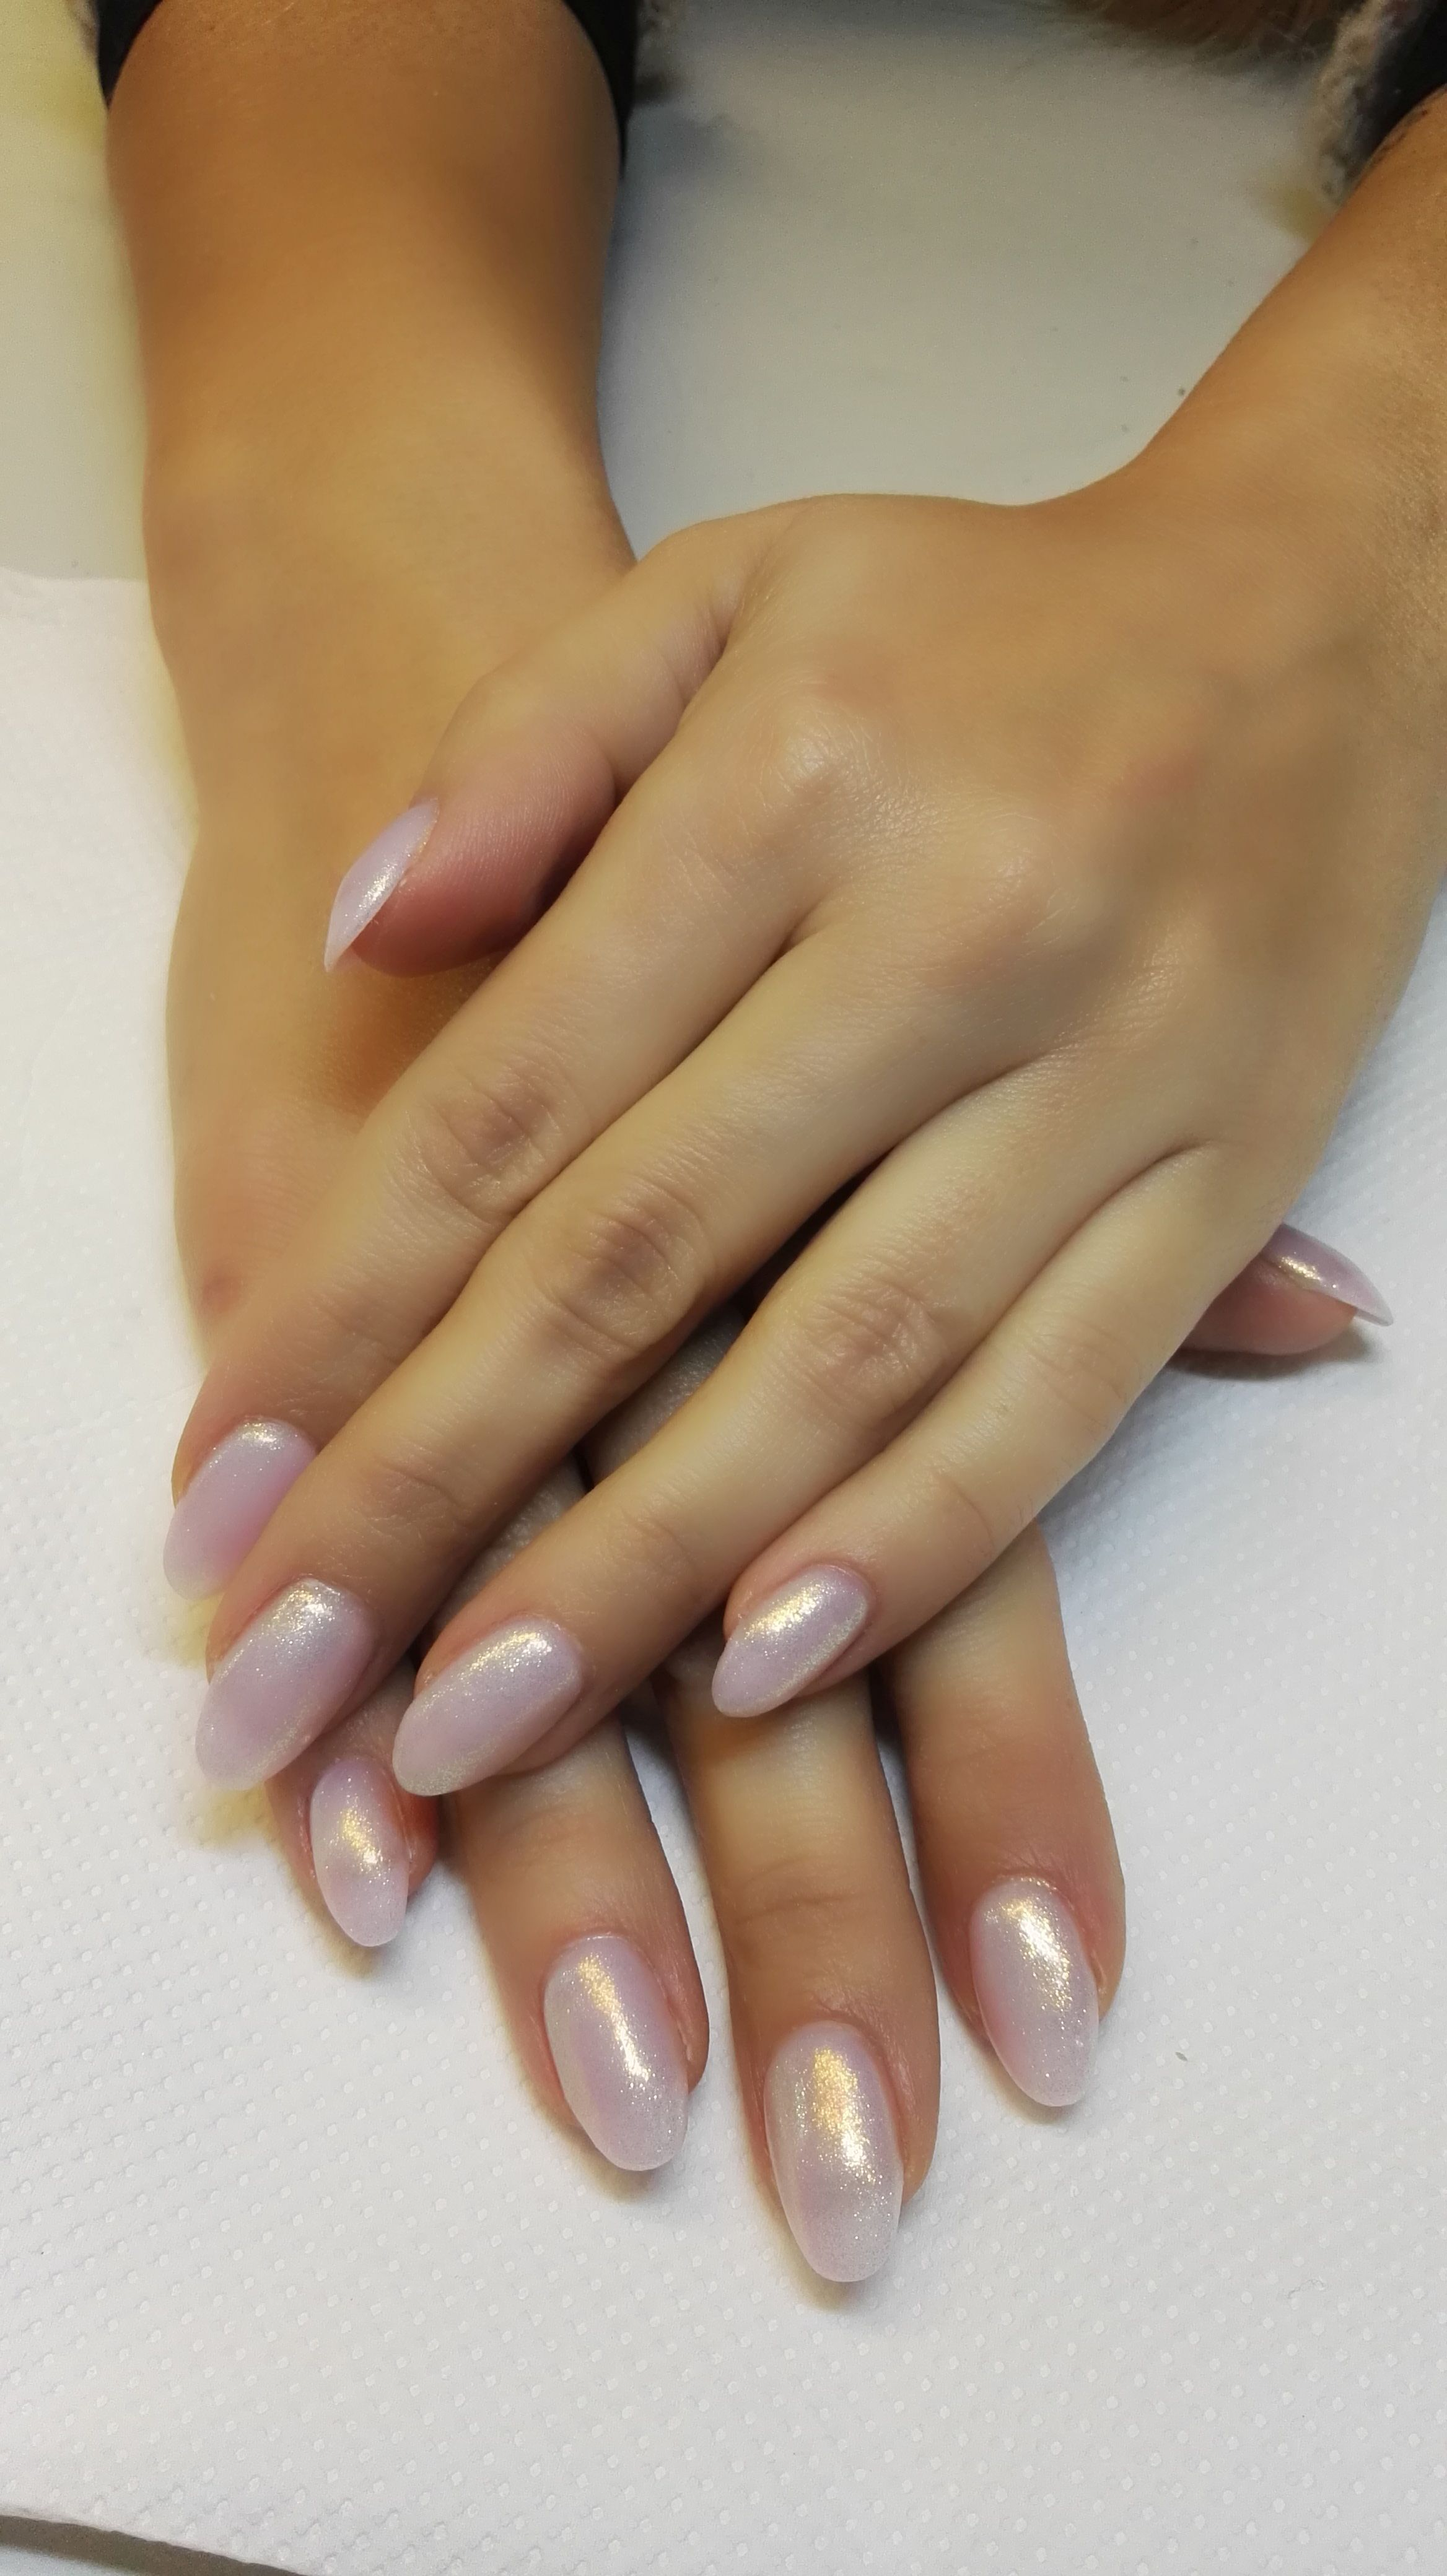 Nail Technician Course Ended Last Week On This Intensive Training Our Student Learned How To Do Professi Nail Courses Gel Nail Extensions Popular Nail Designs